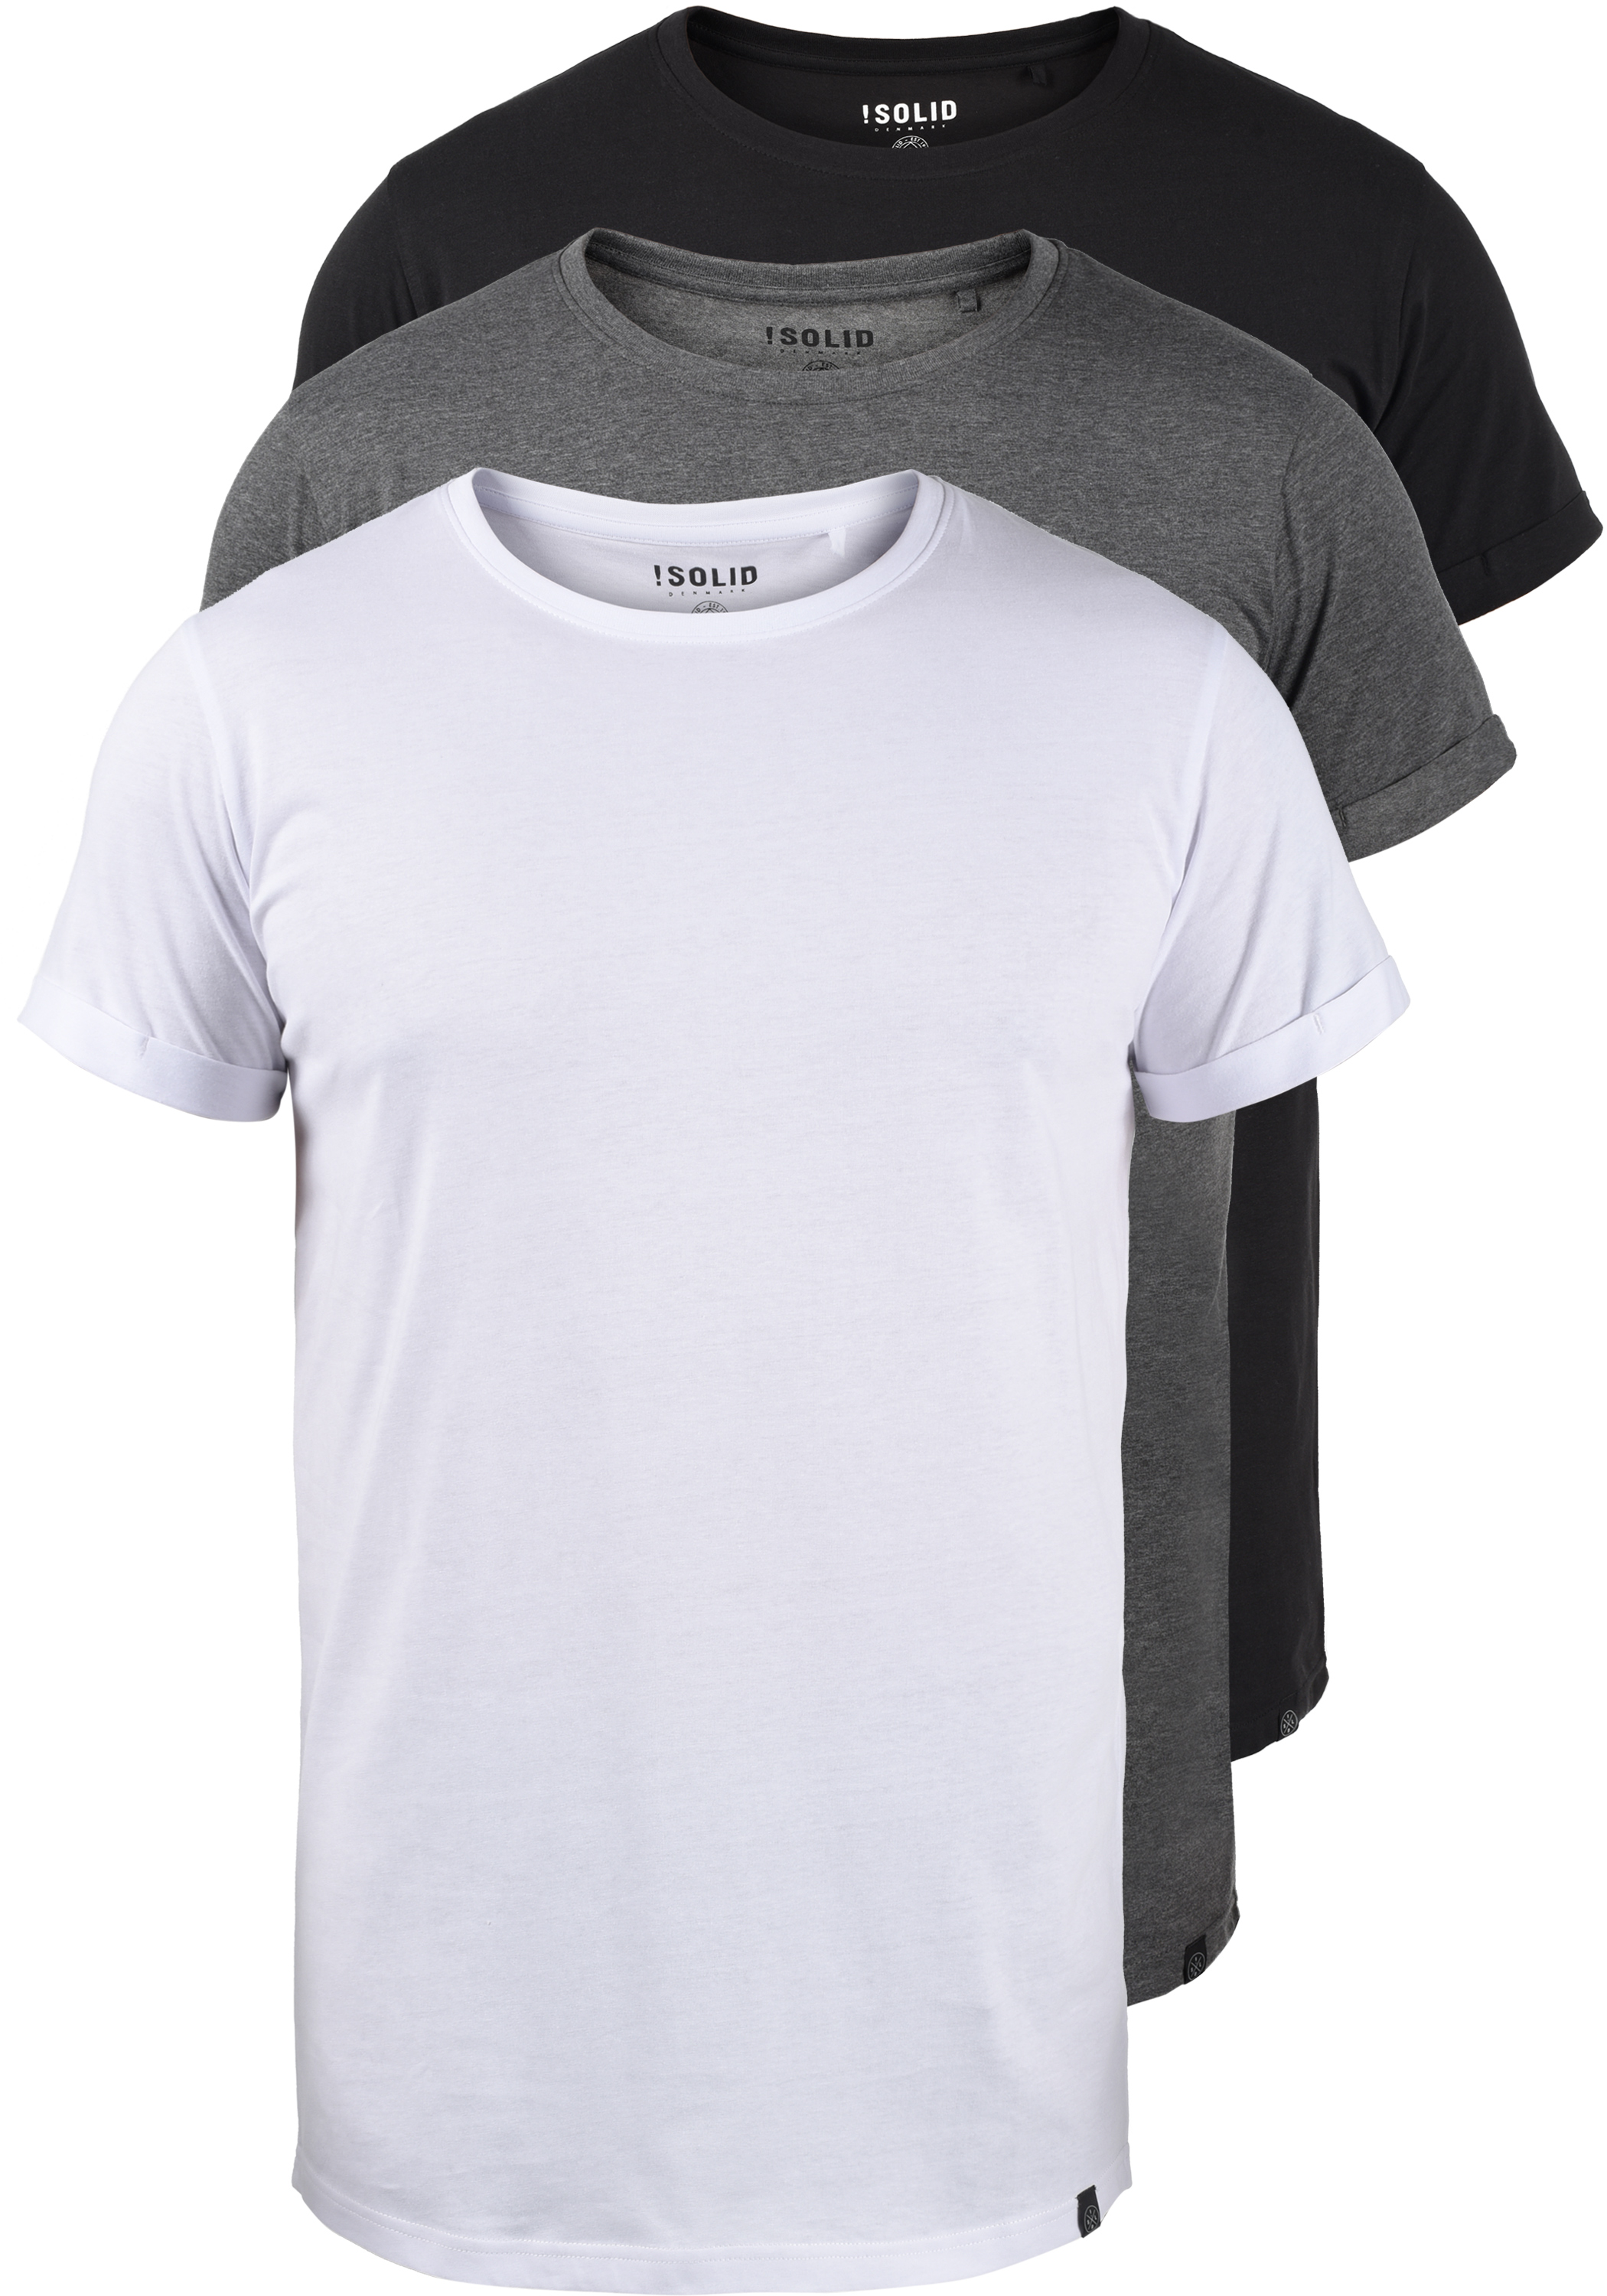 Solid Longo (3er-Pack) T-Shirt